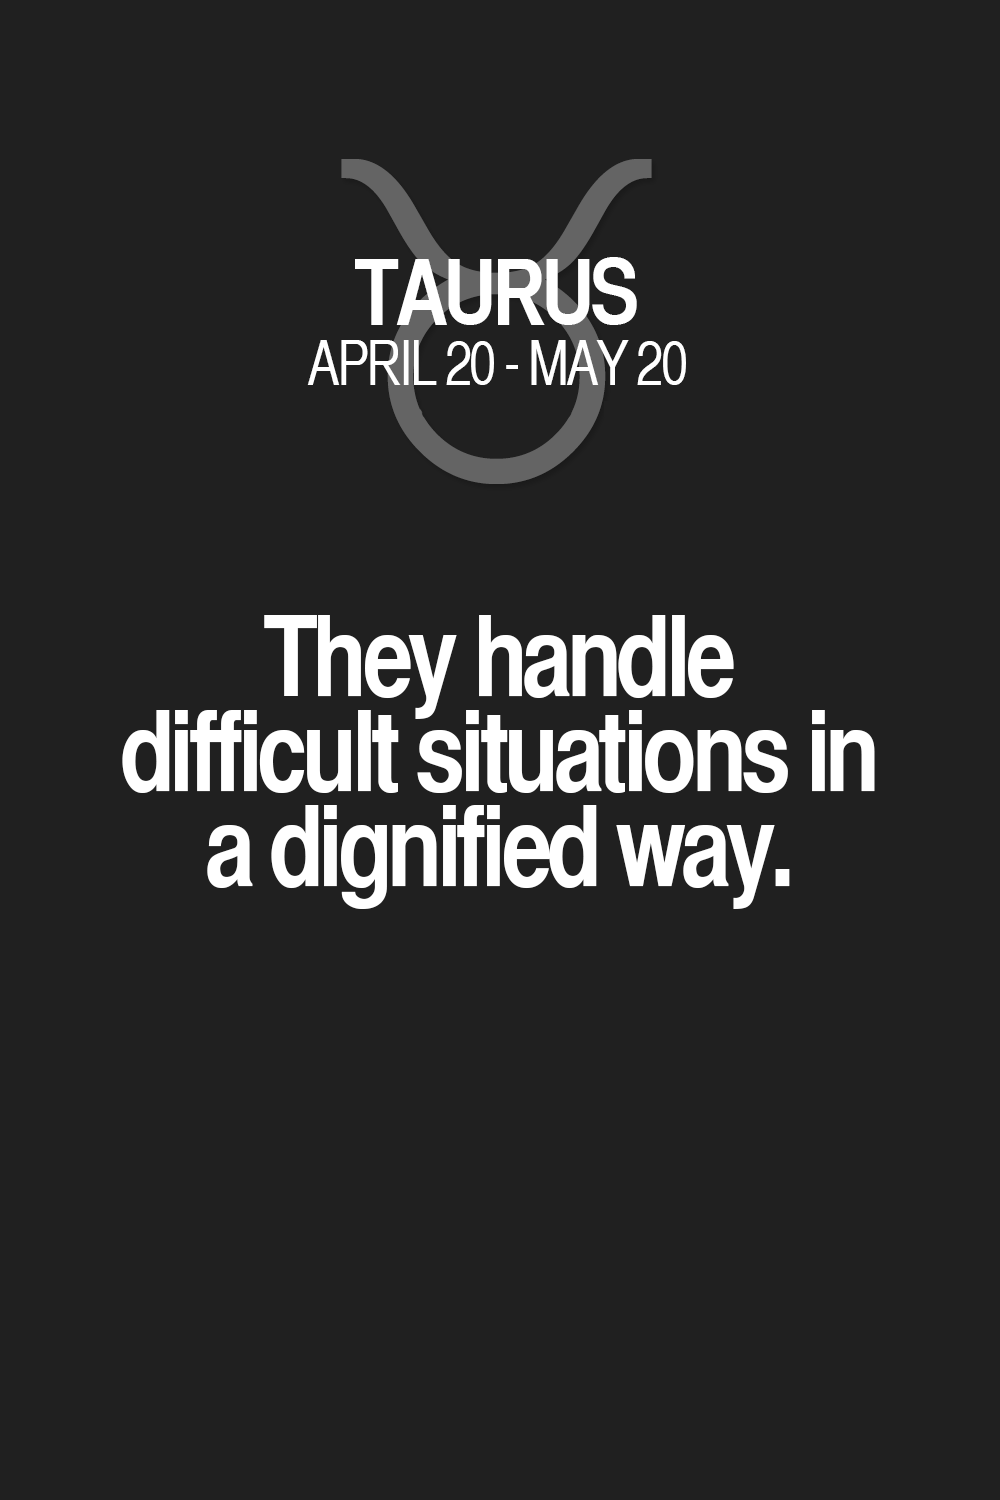 they handle difficult situations in a dignified way taurus they handle difficult situations in a dignified way taurus taurus quotes taurus zodiac